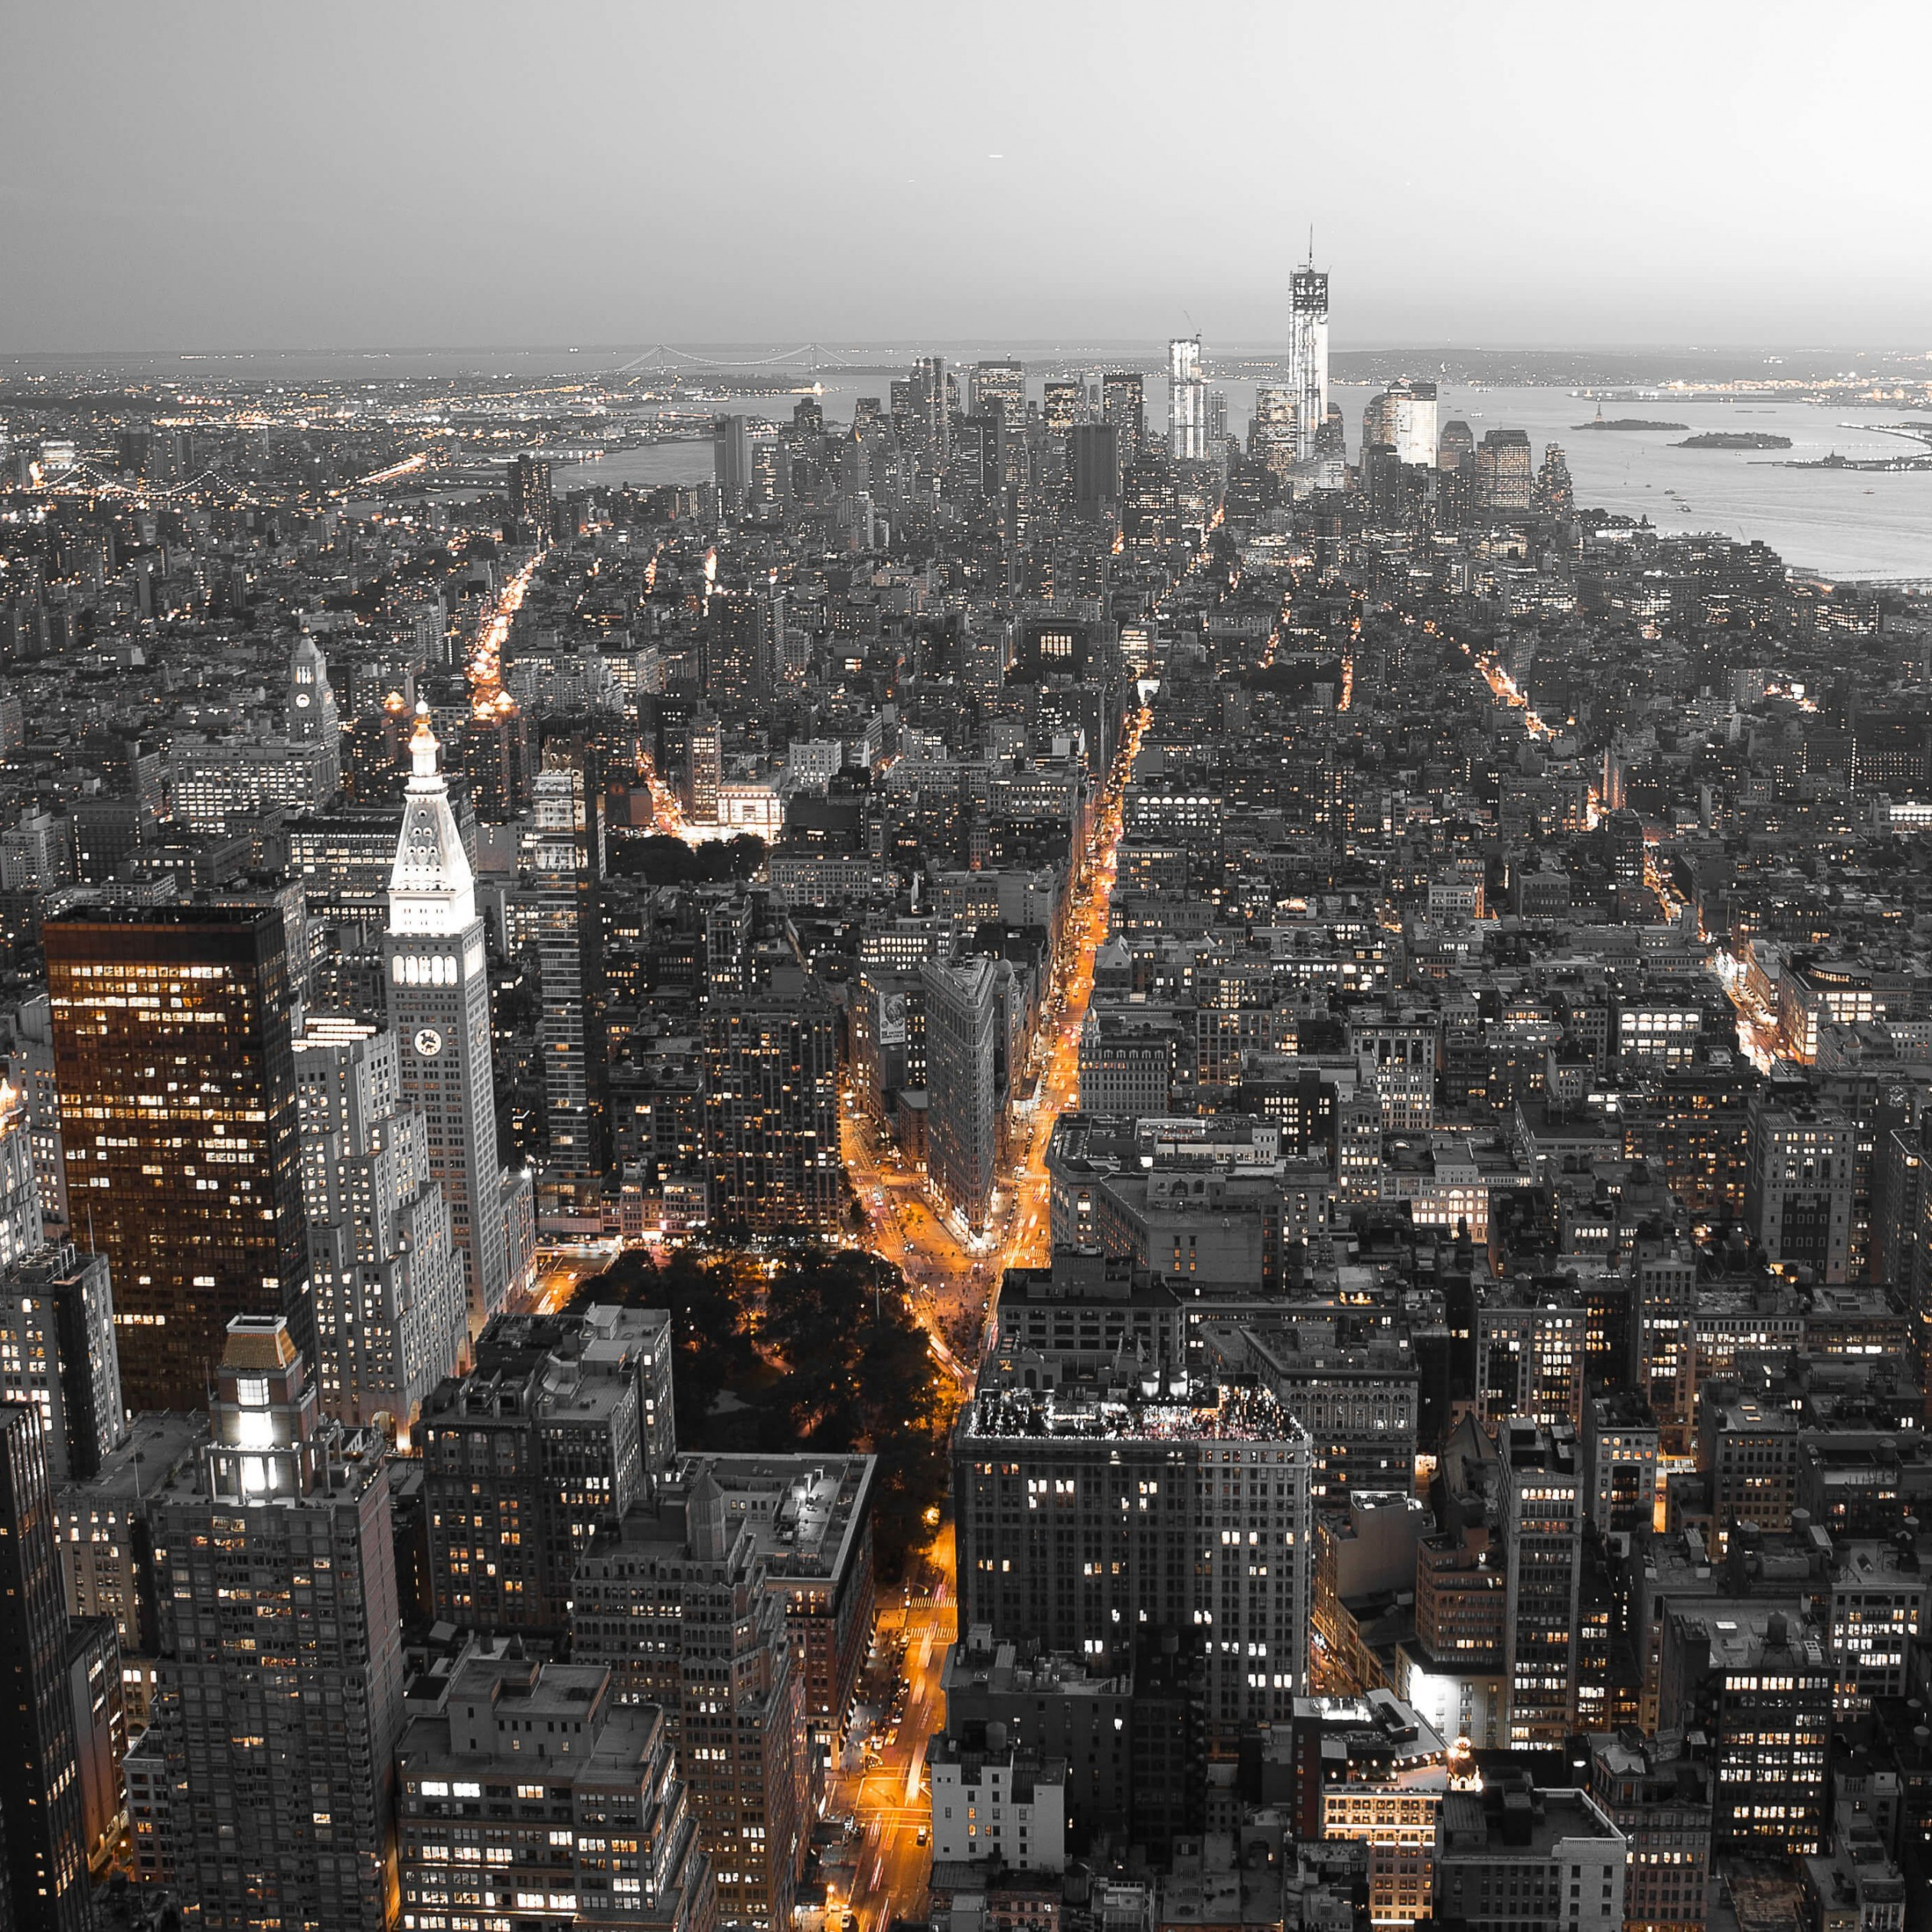 New York City by Night Wallpaper for Apple iPad 3